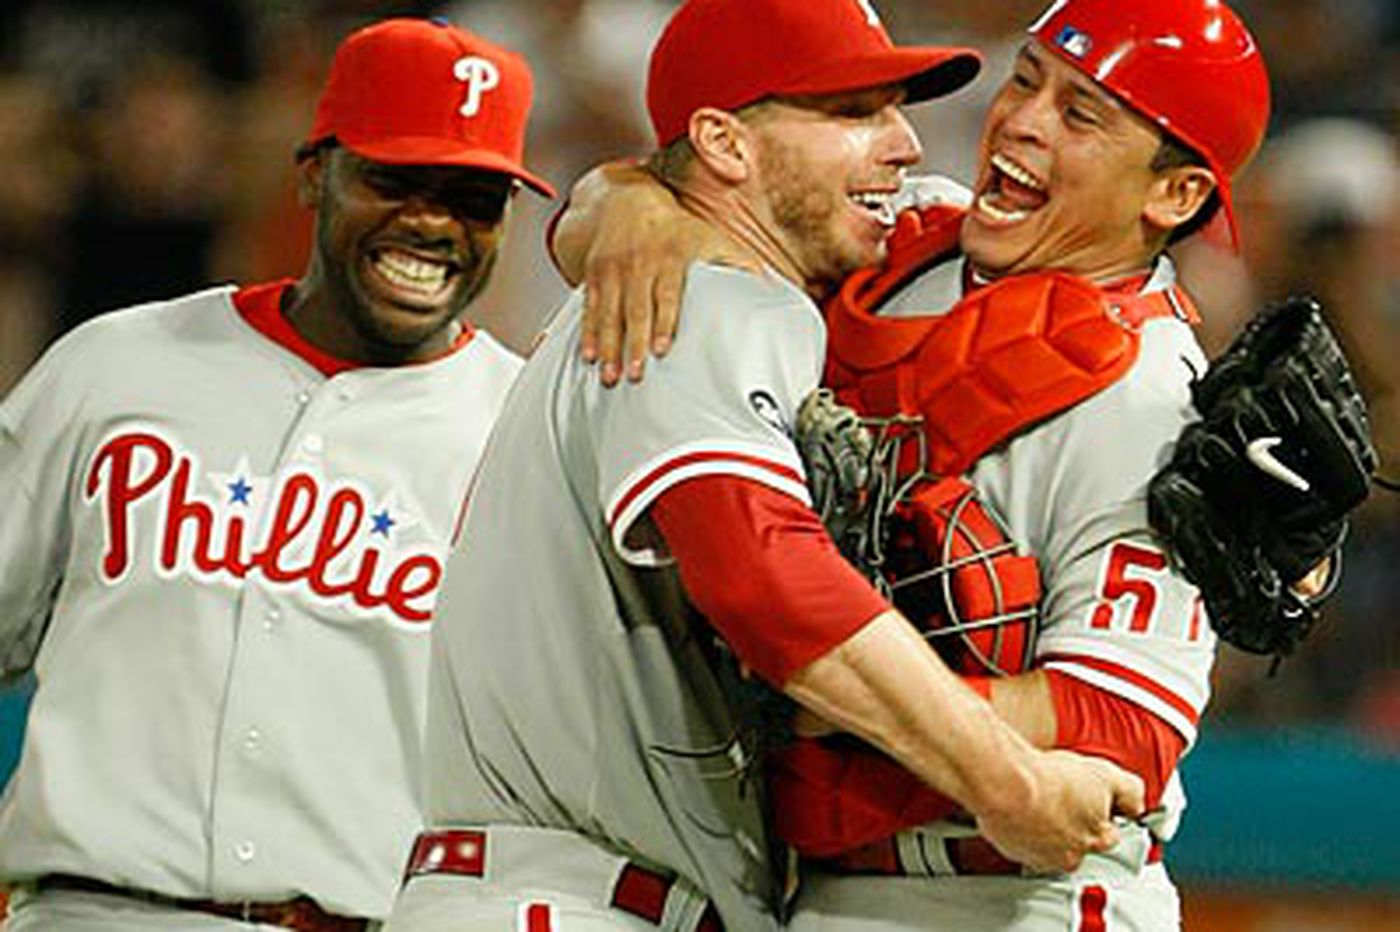 Marlins selling unused tickets from Halladay's perfect game